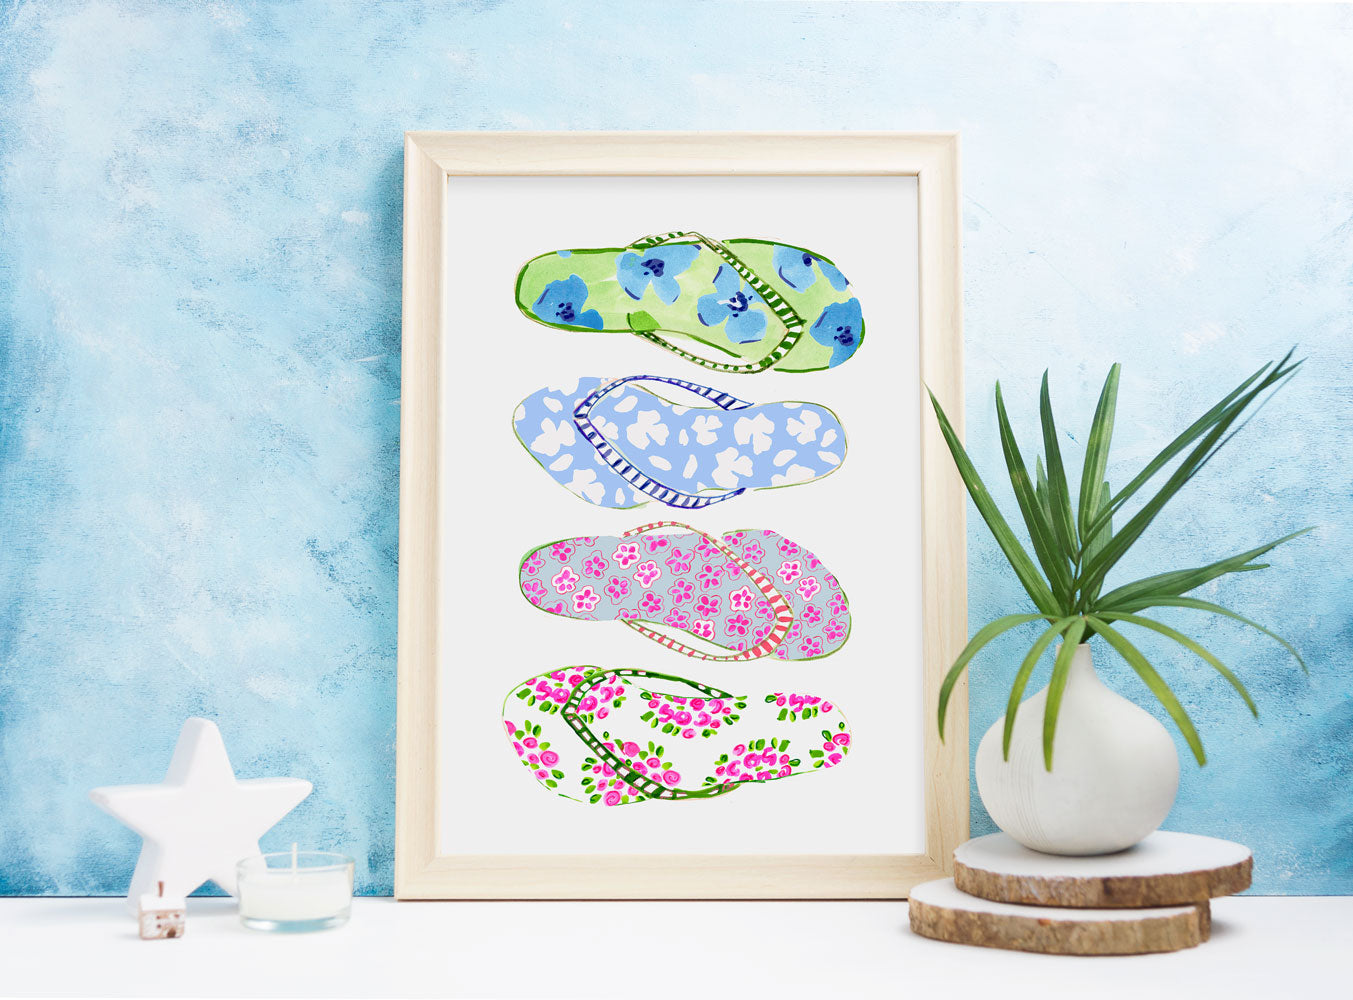 Flip Flops - Fashion Illustration Wall Art Collection-Room Setting-Di Lewis